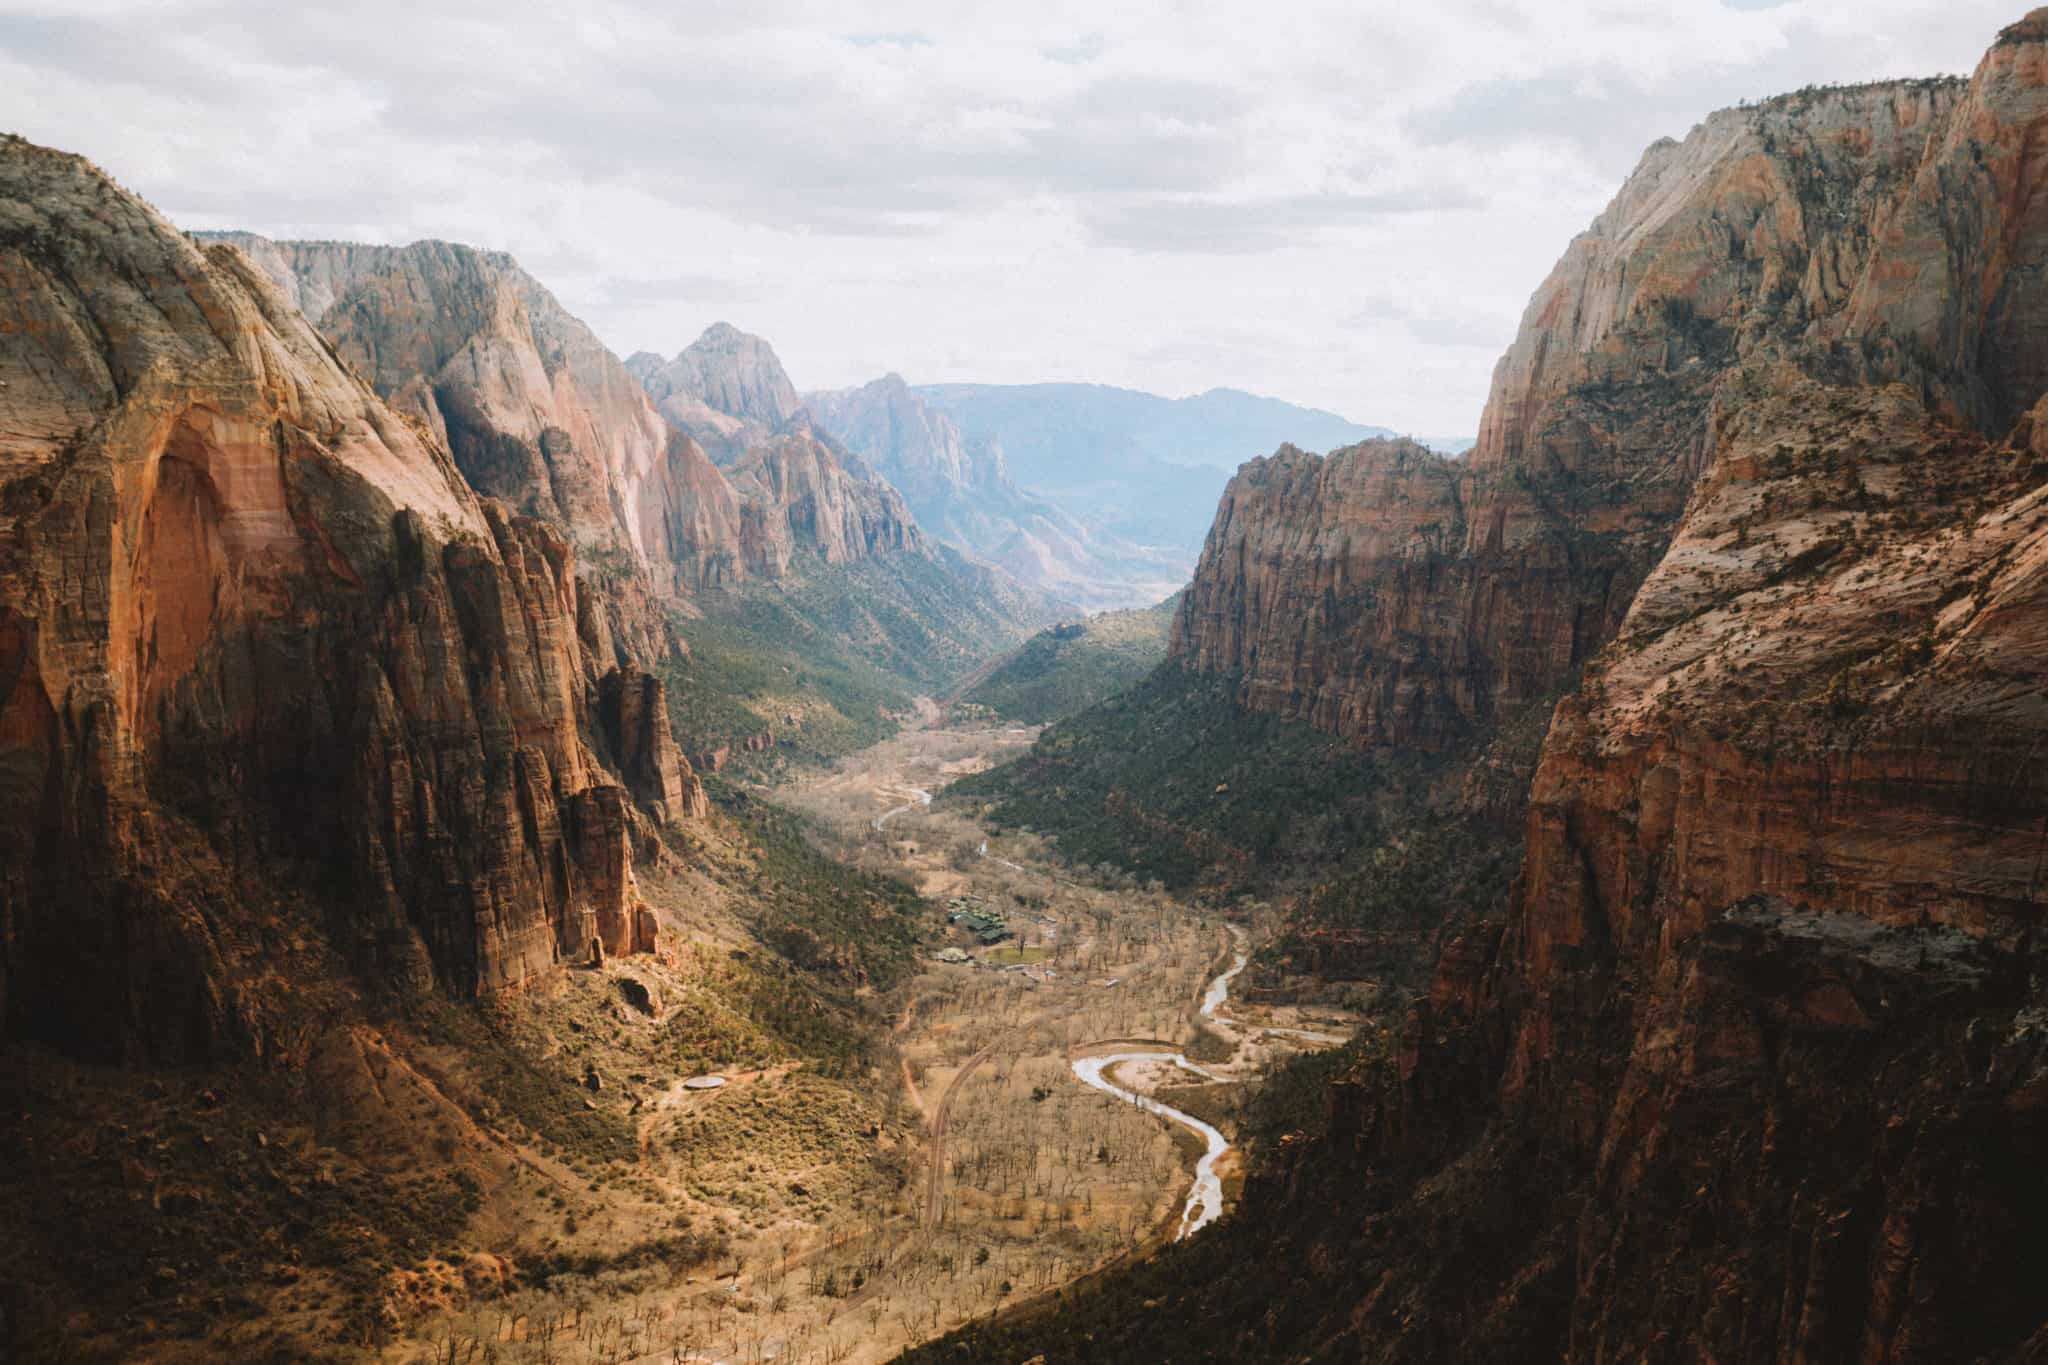 Utah National Parks Route Trip - Zion View from Angels Landing